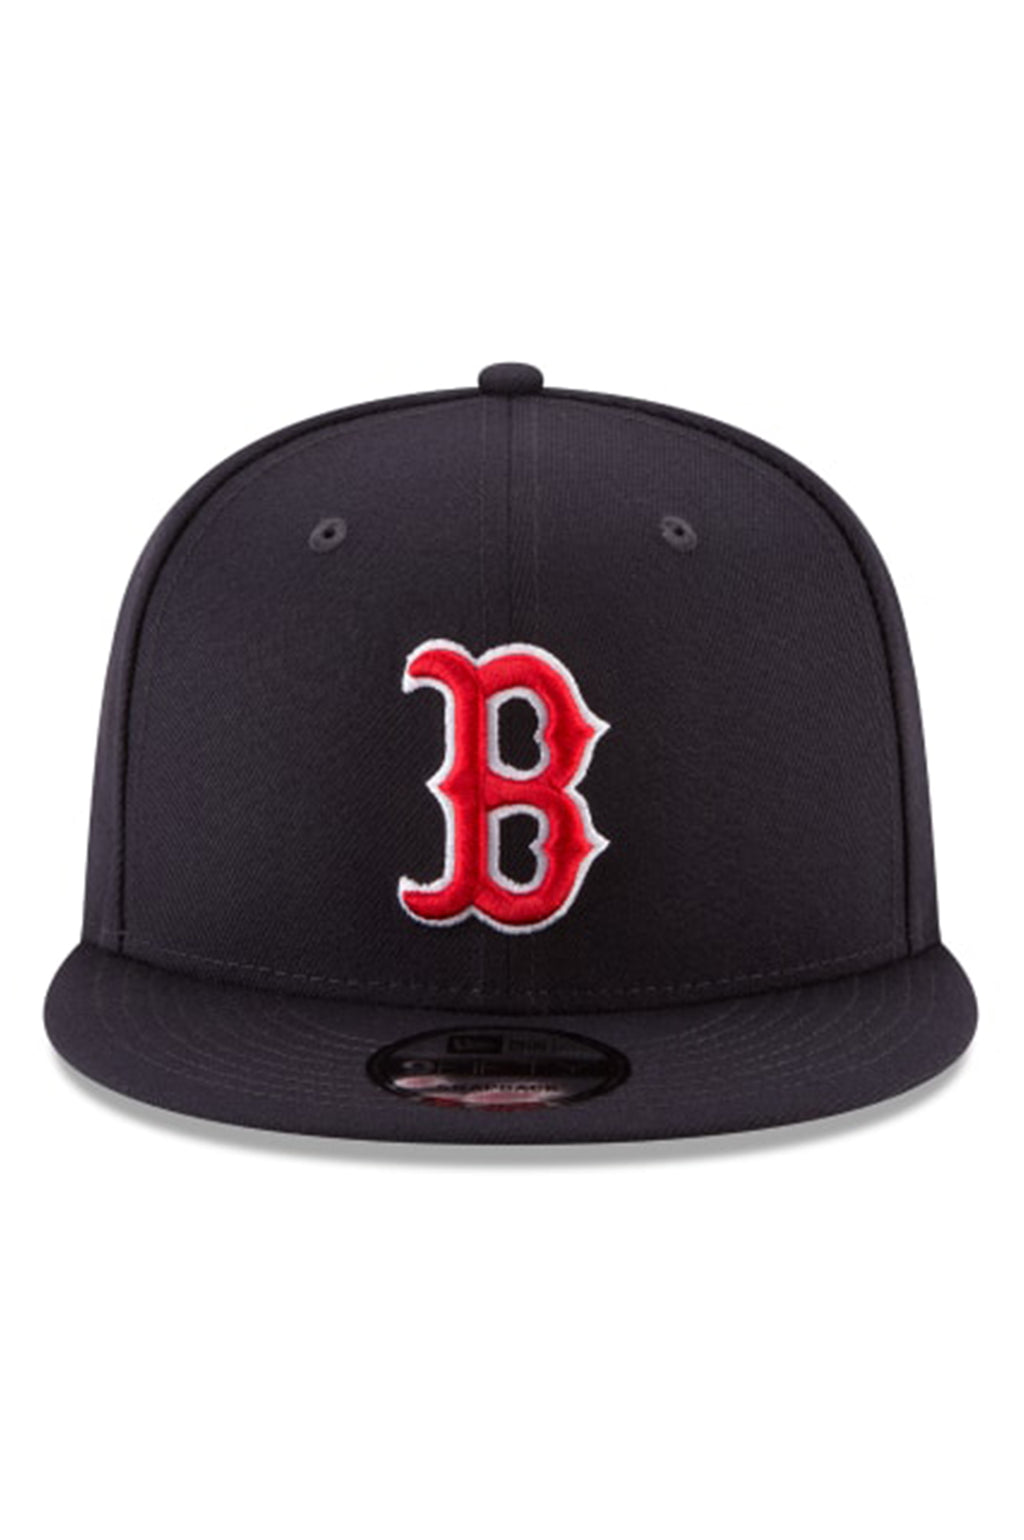 New Era Snap Boston Red Sox